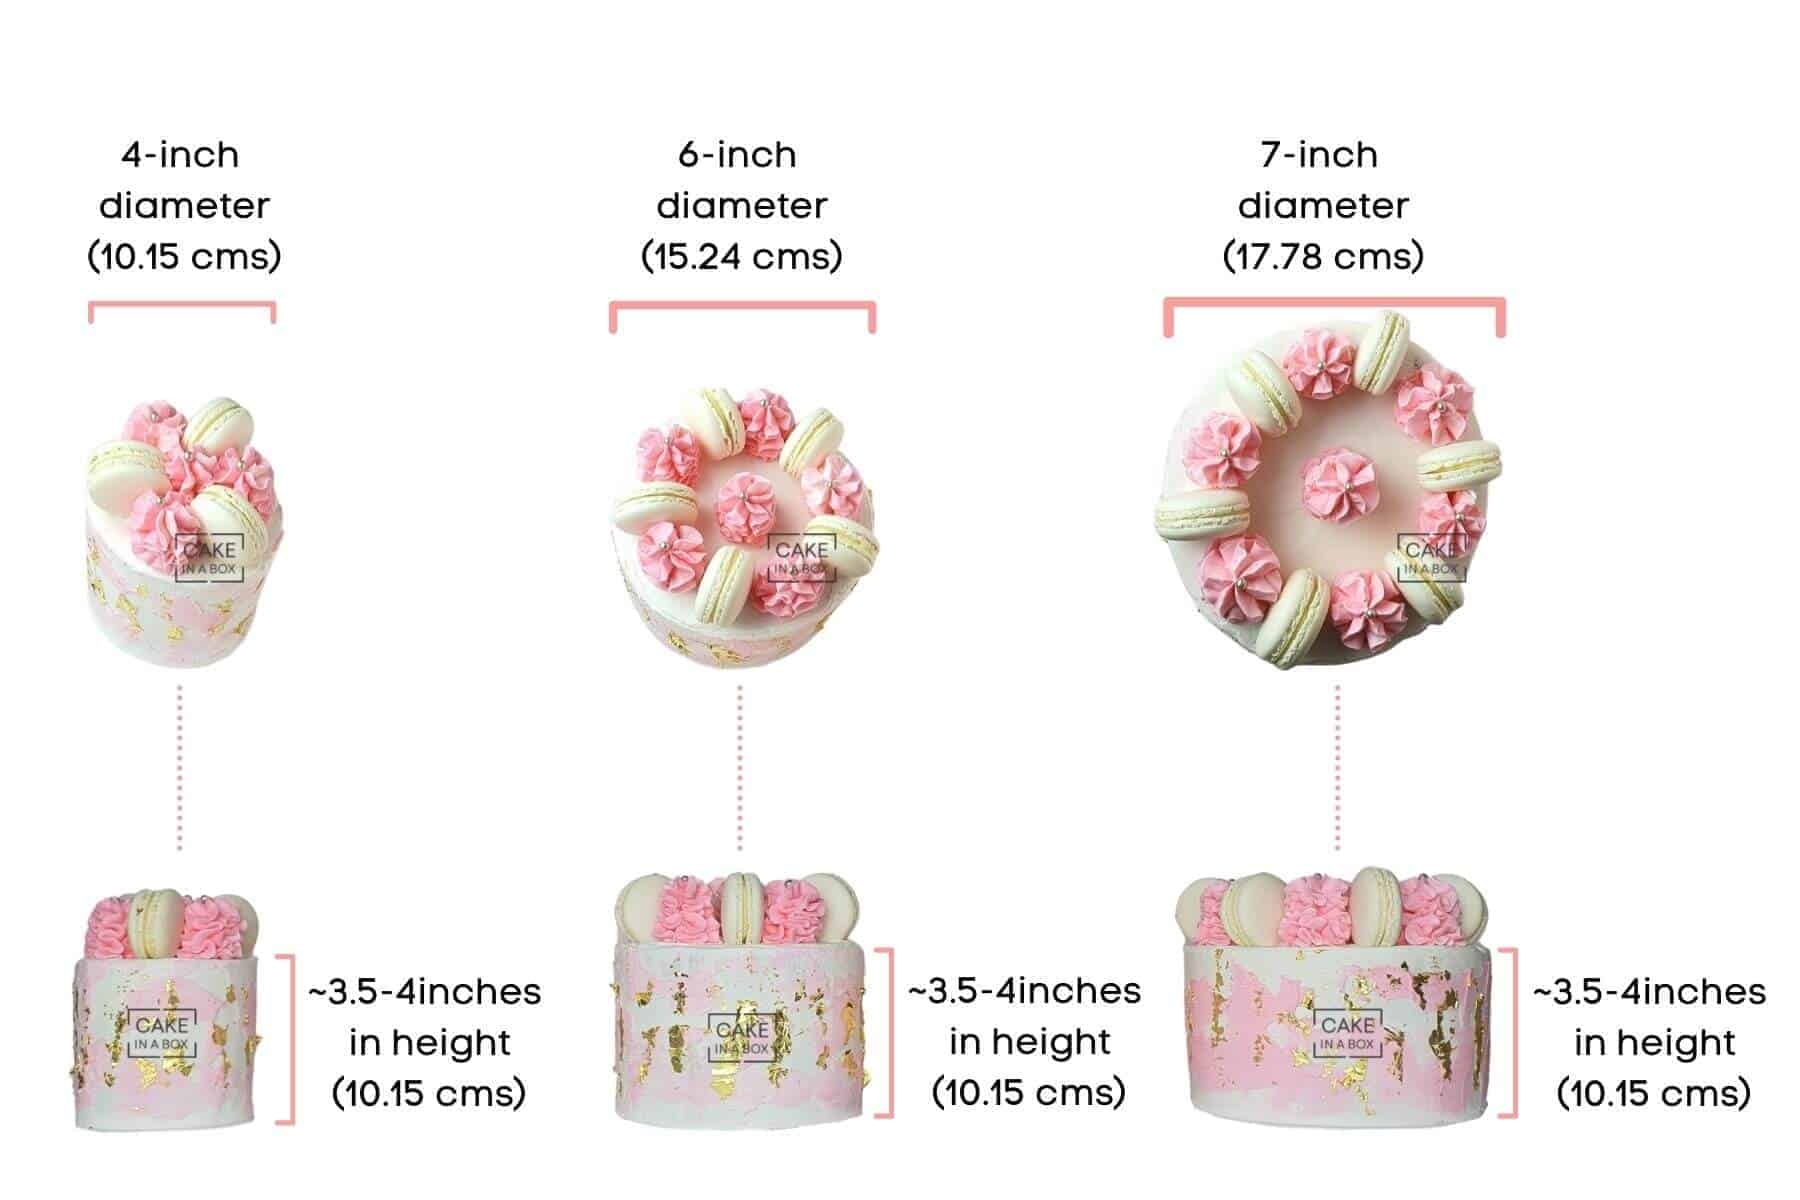 Cake In A Box Size Information